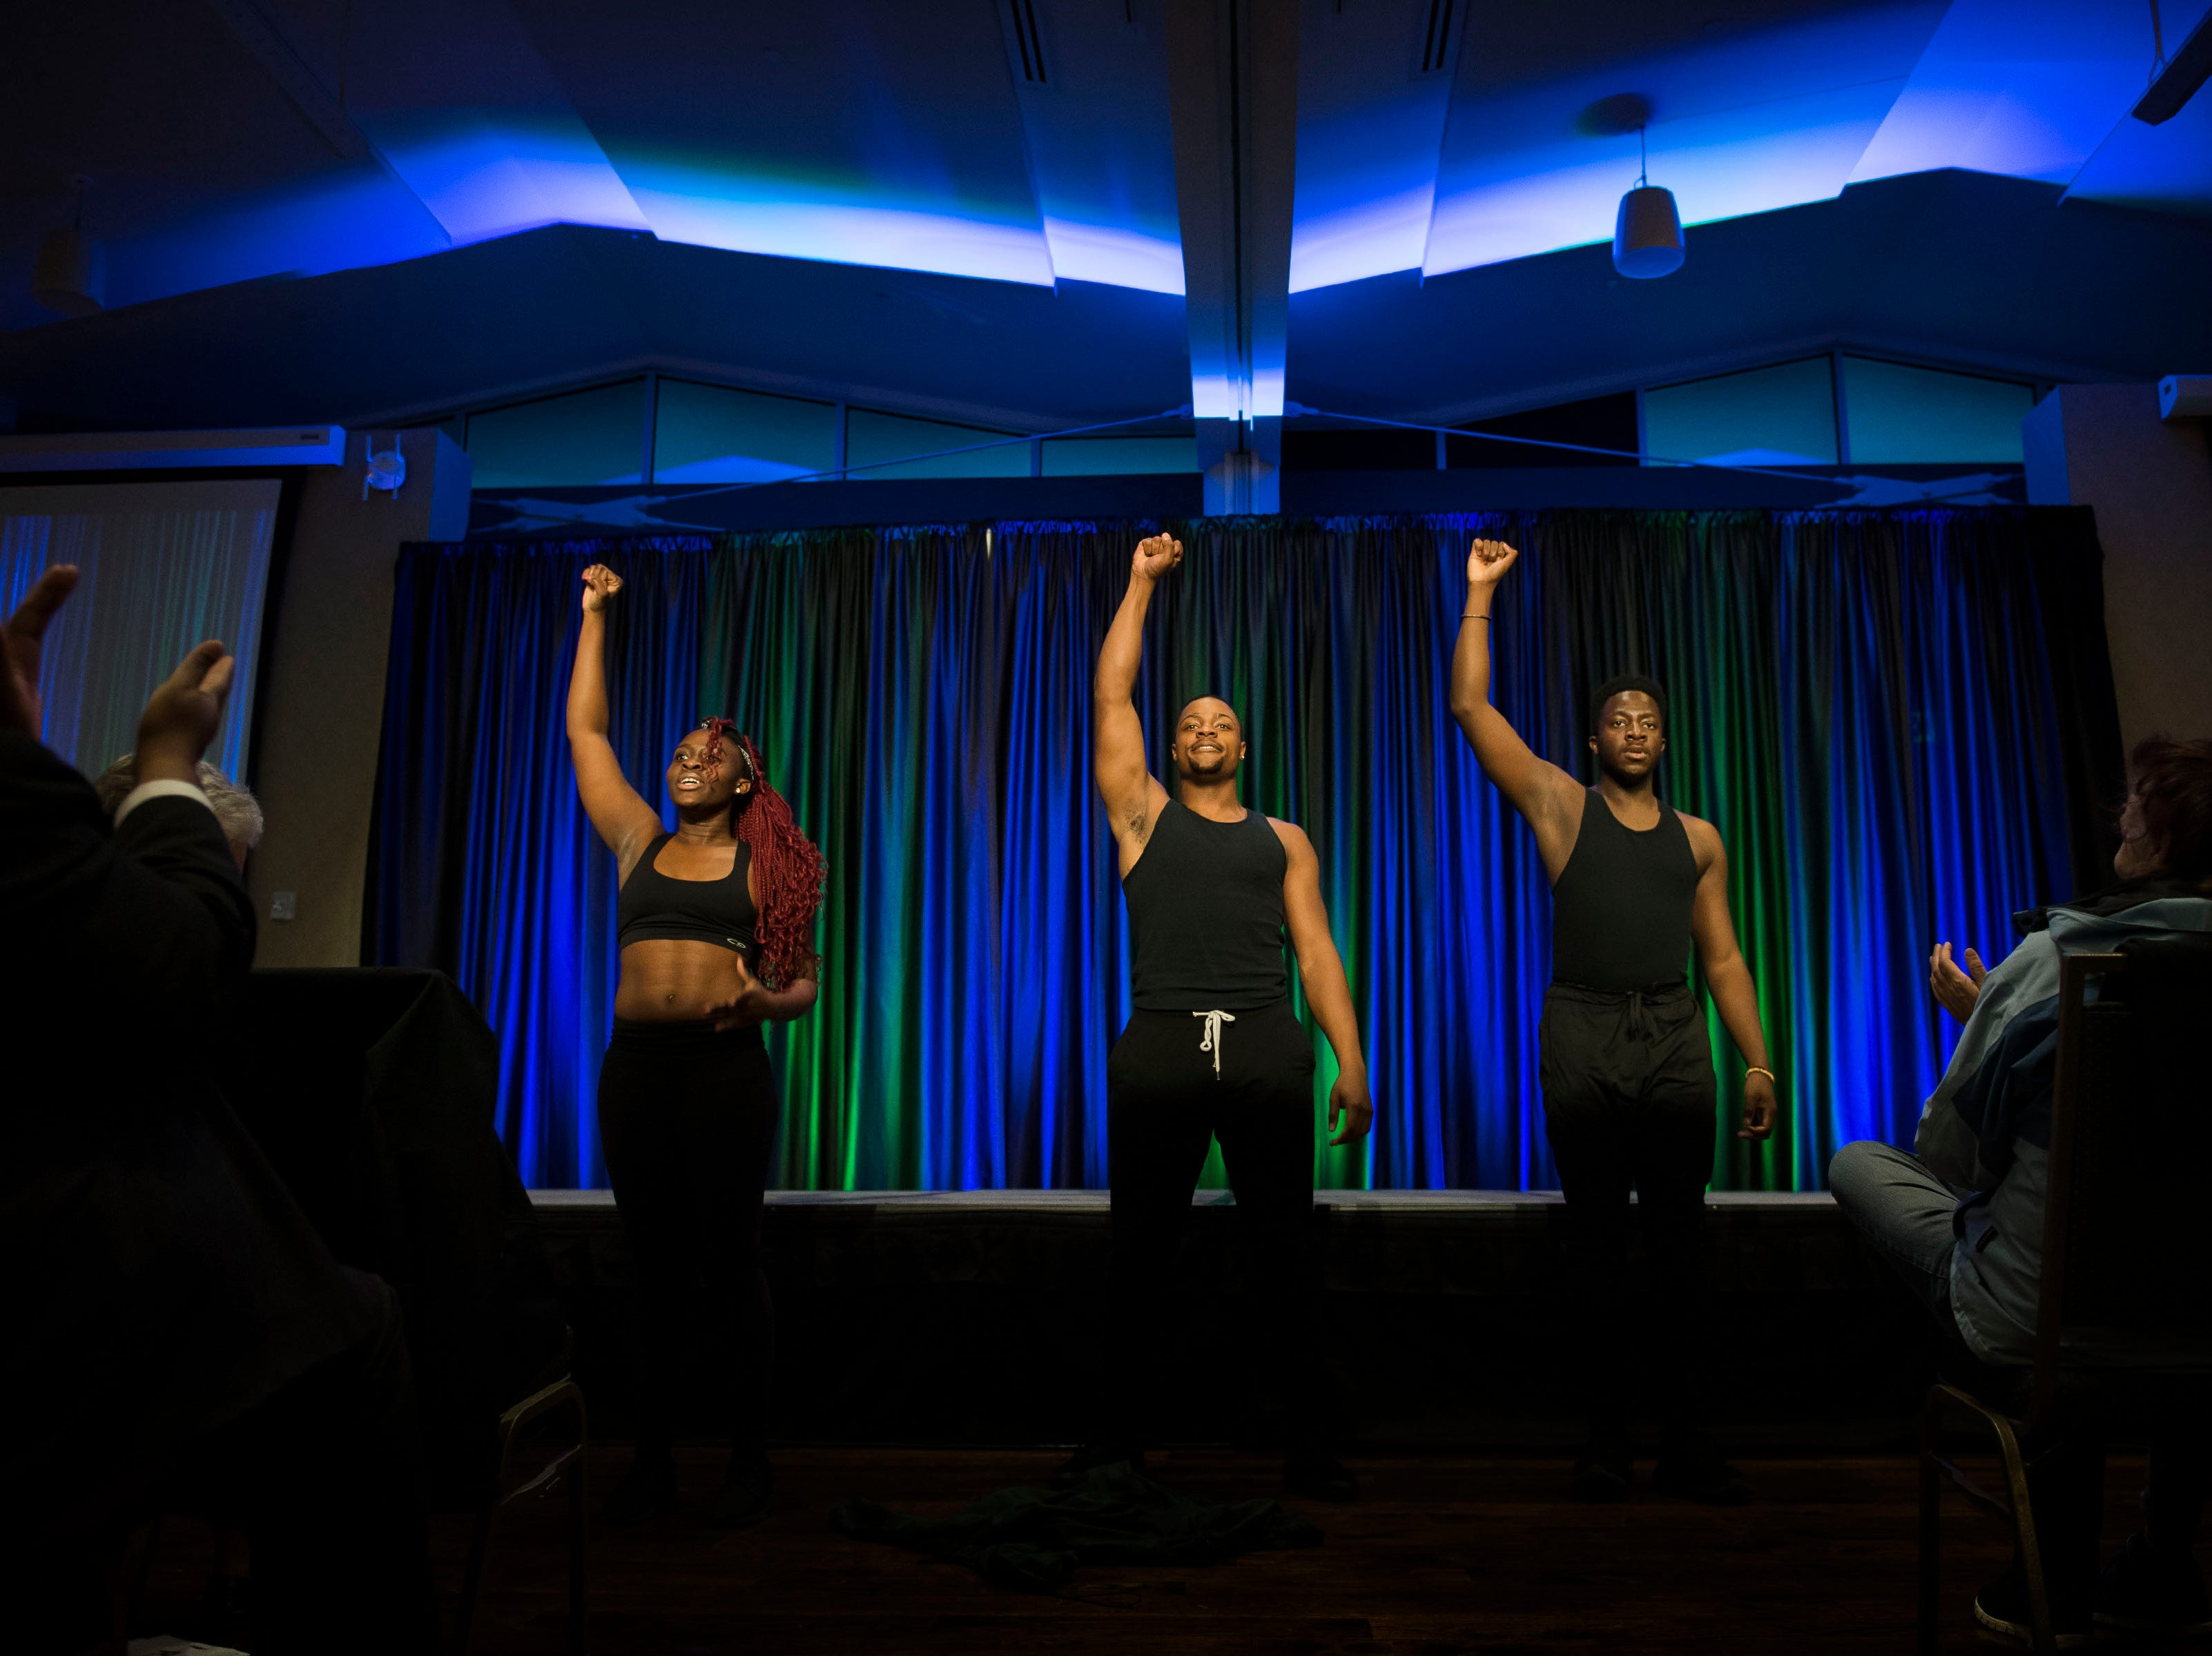 Dancers with the student organization Africans United perform at the Dr. Martin Luther King, Jr. March & Celebration on Monday, Jan. 21, 2019, at the Lory Student Center on the Colorado State University campus in Fort Collins, Colo.